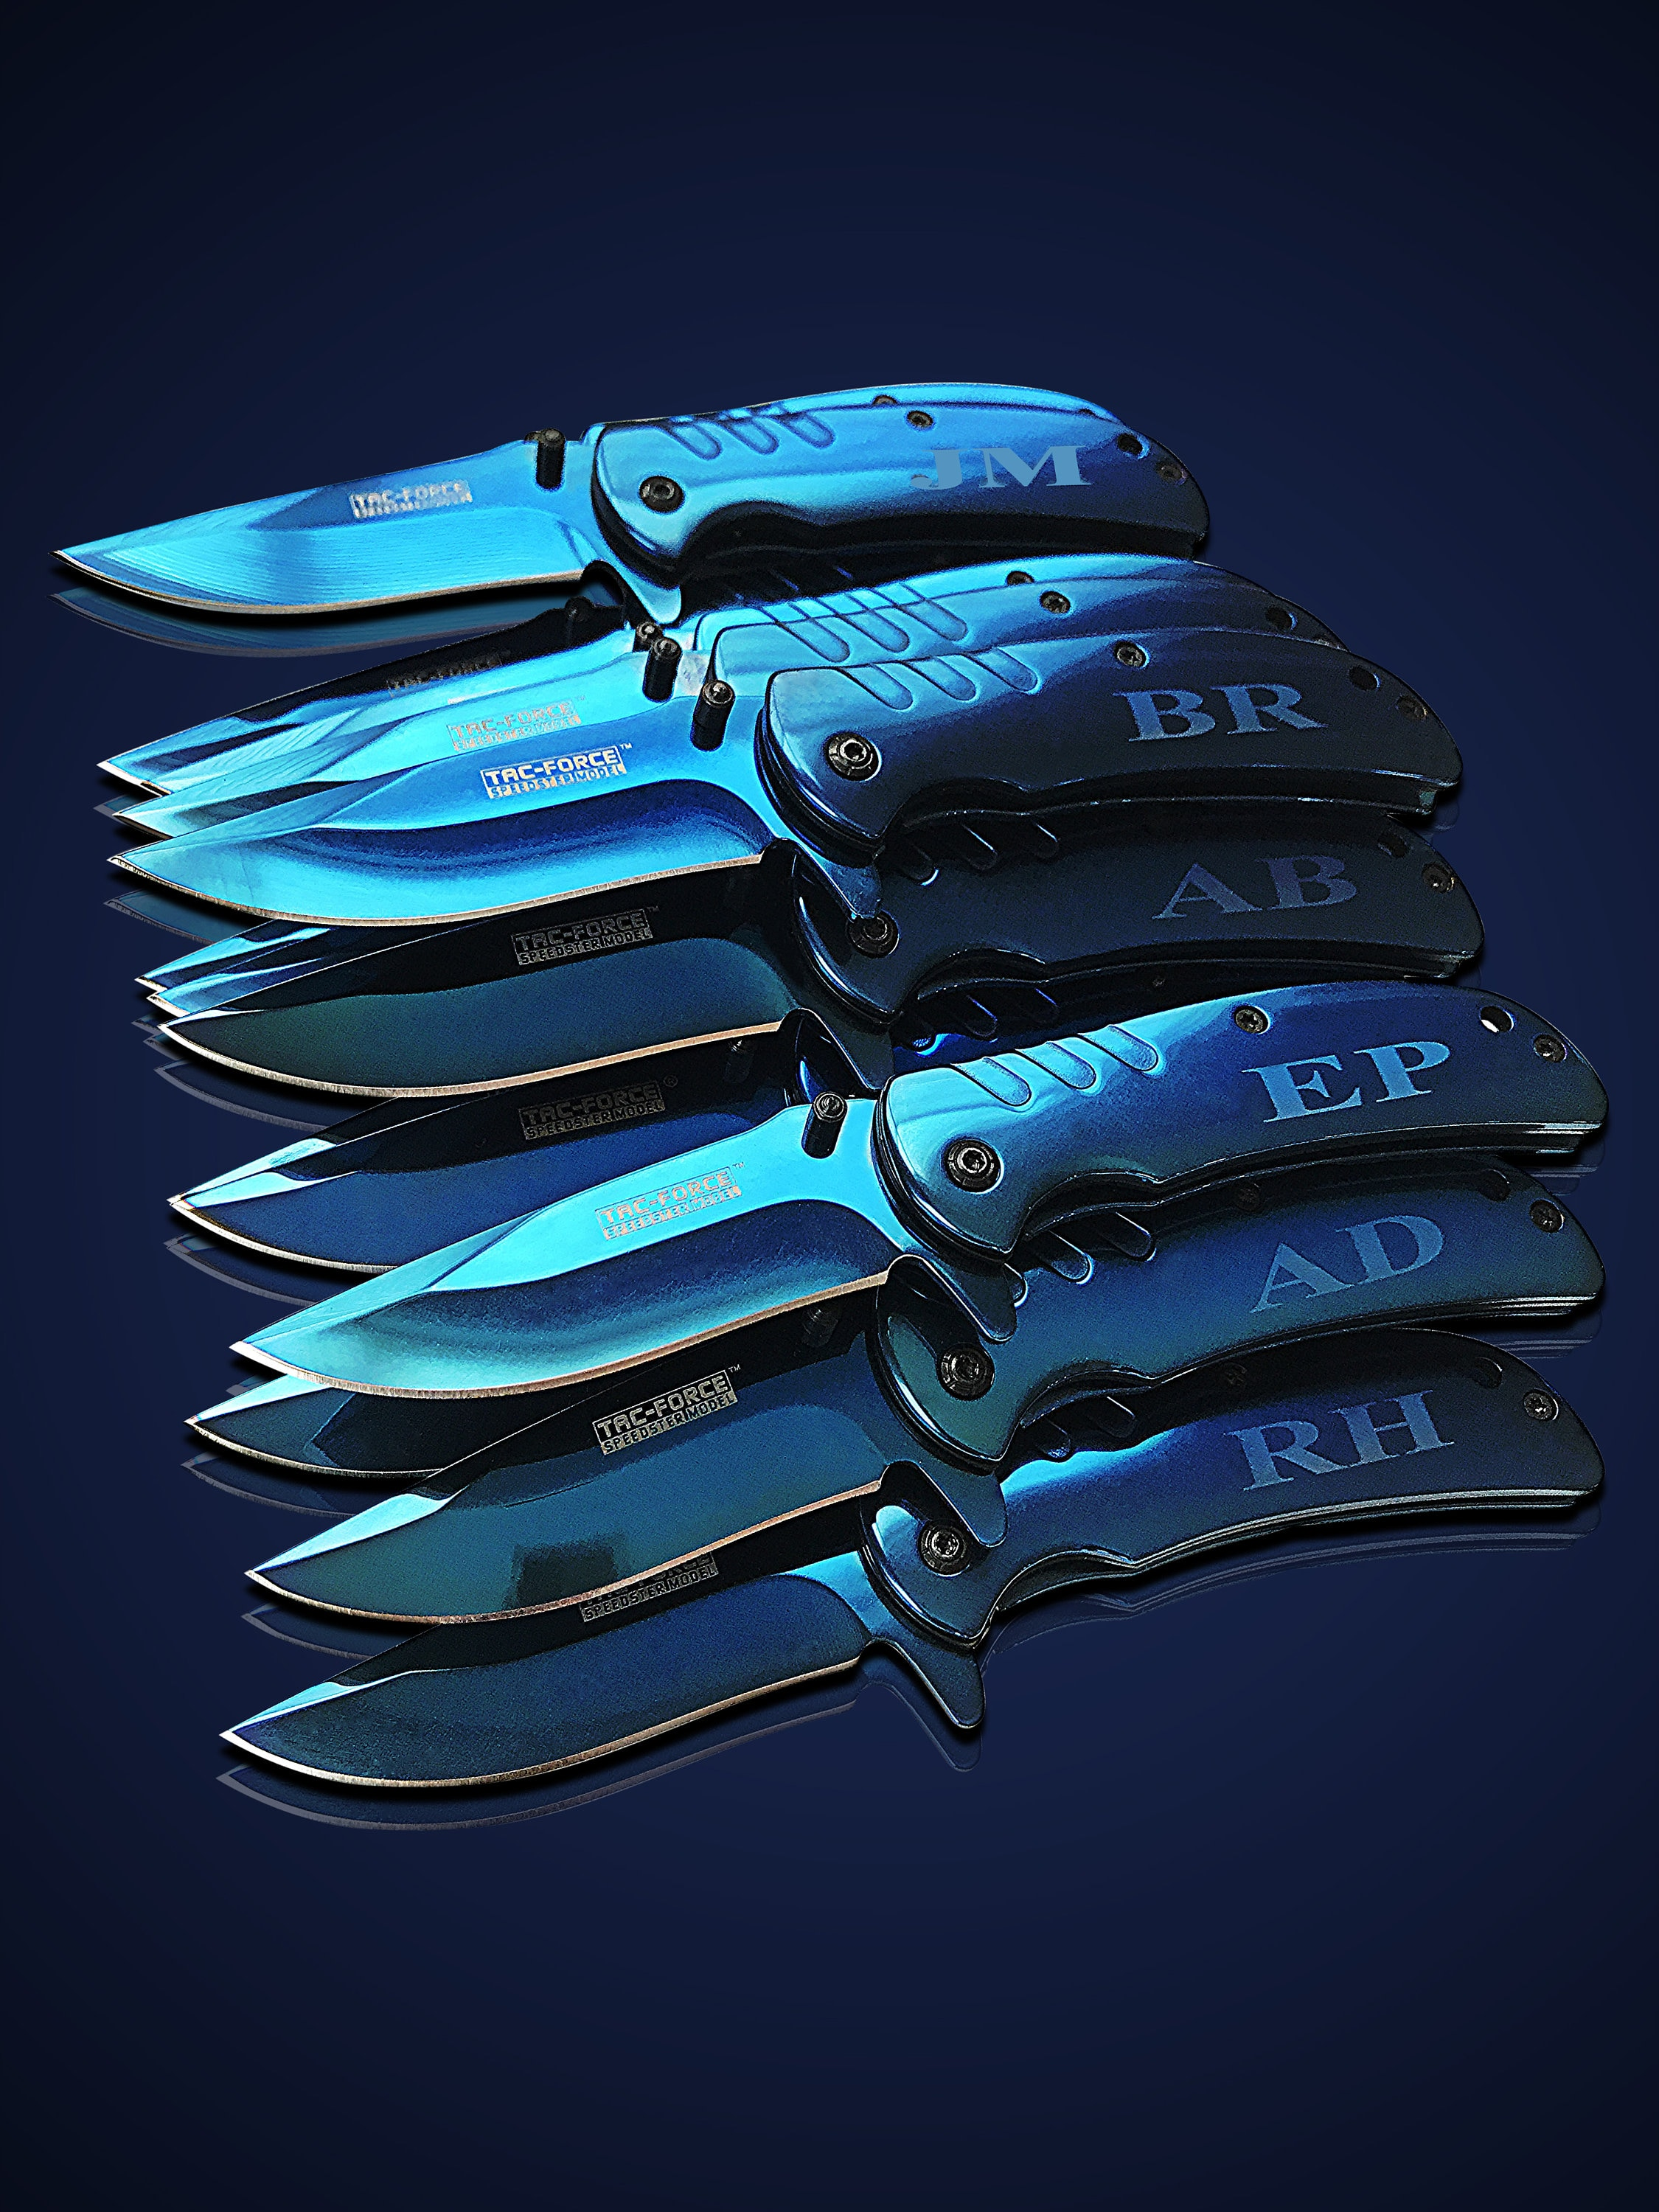 Personalized Gifts Groomsmen Pocket Knife Set Of 7 Folding Knife